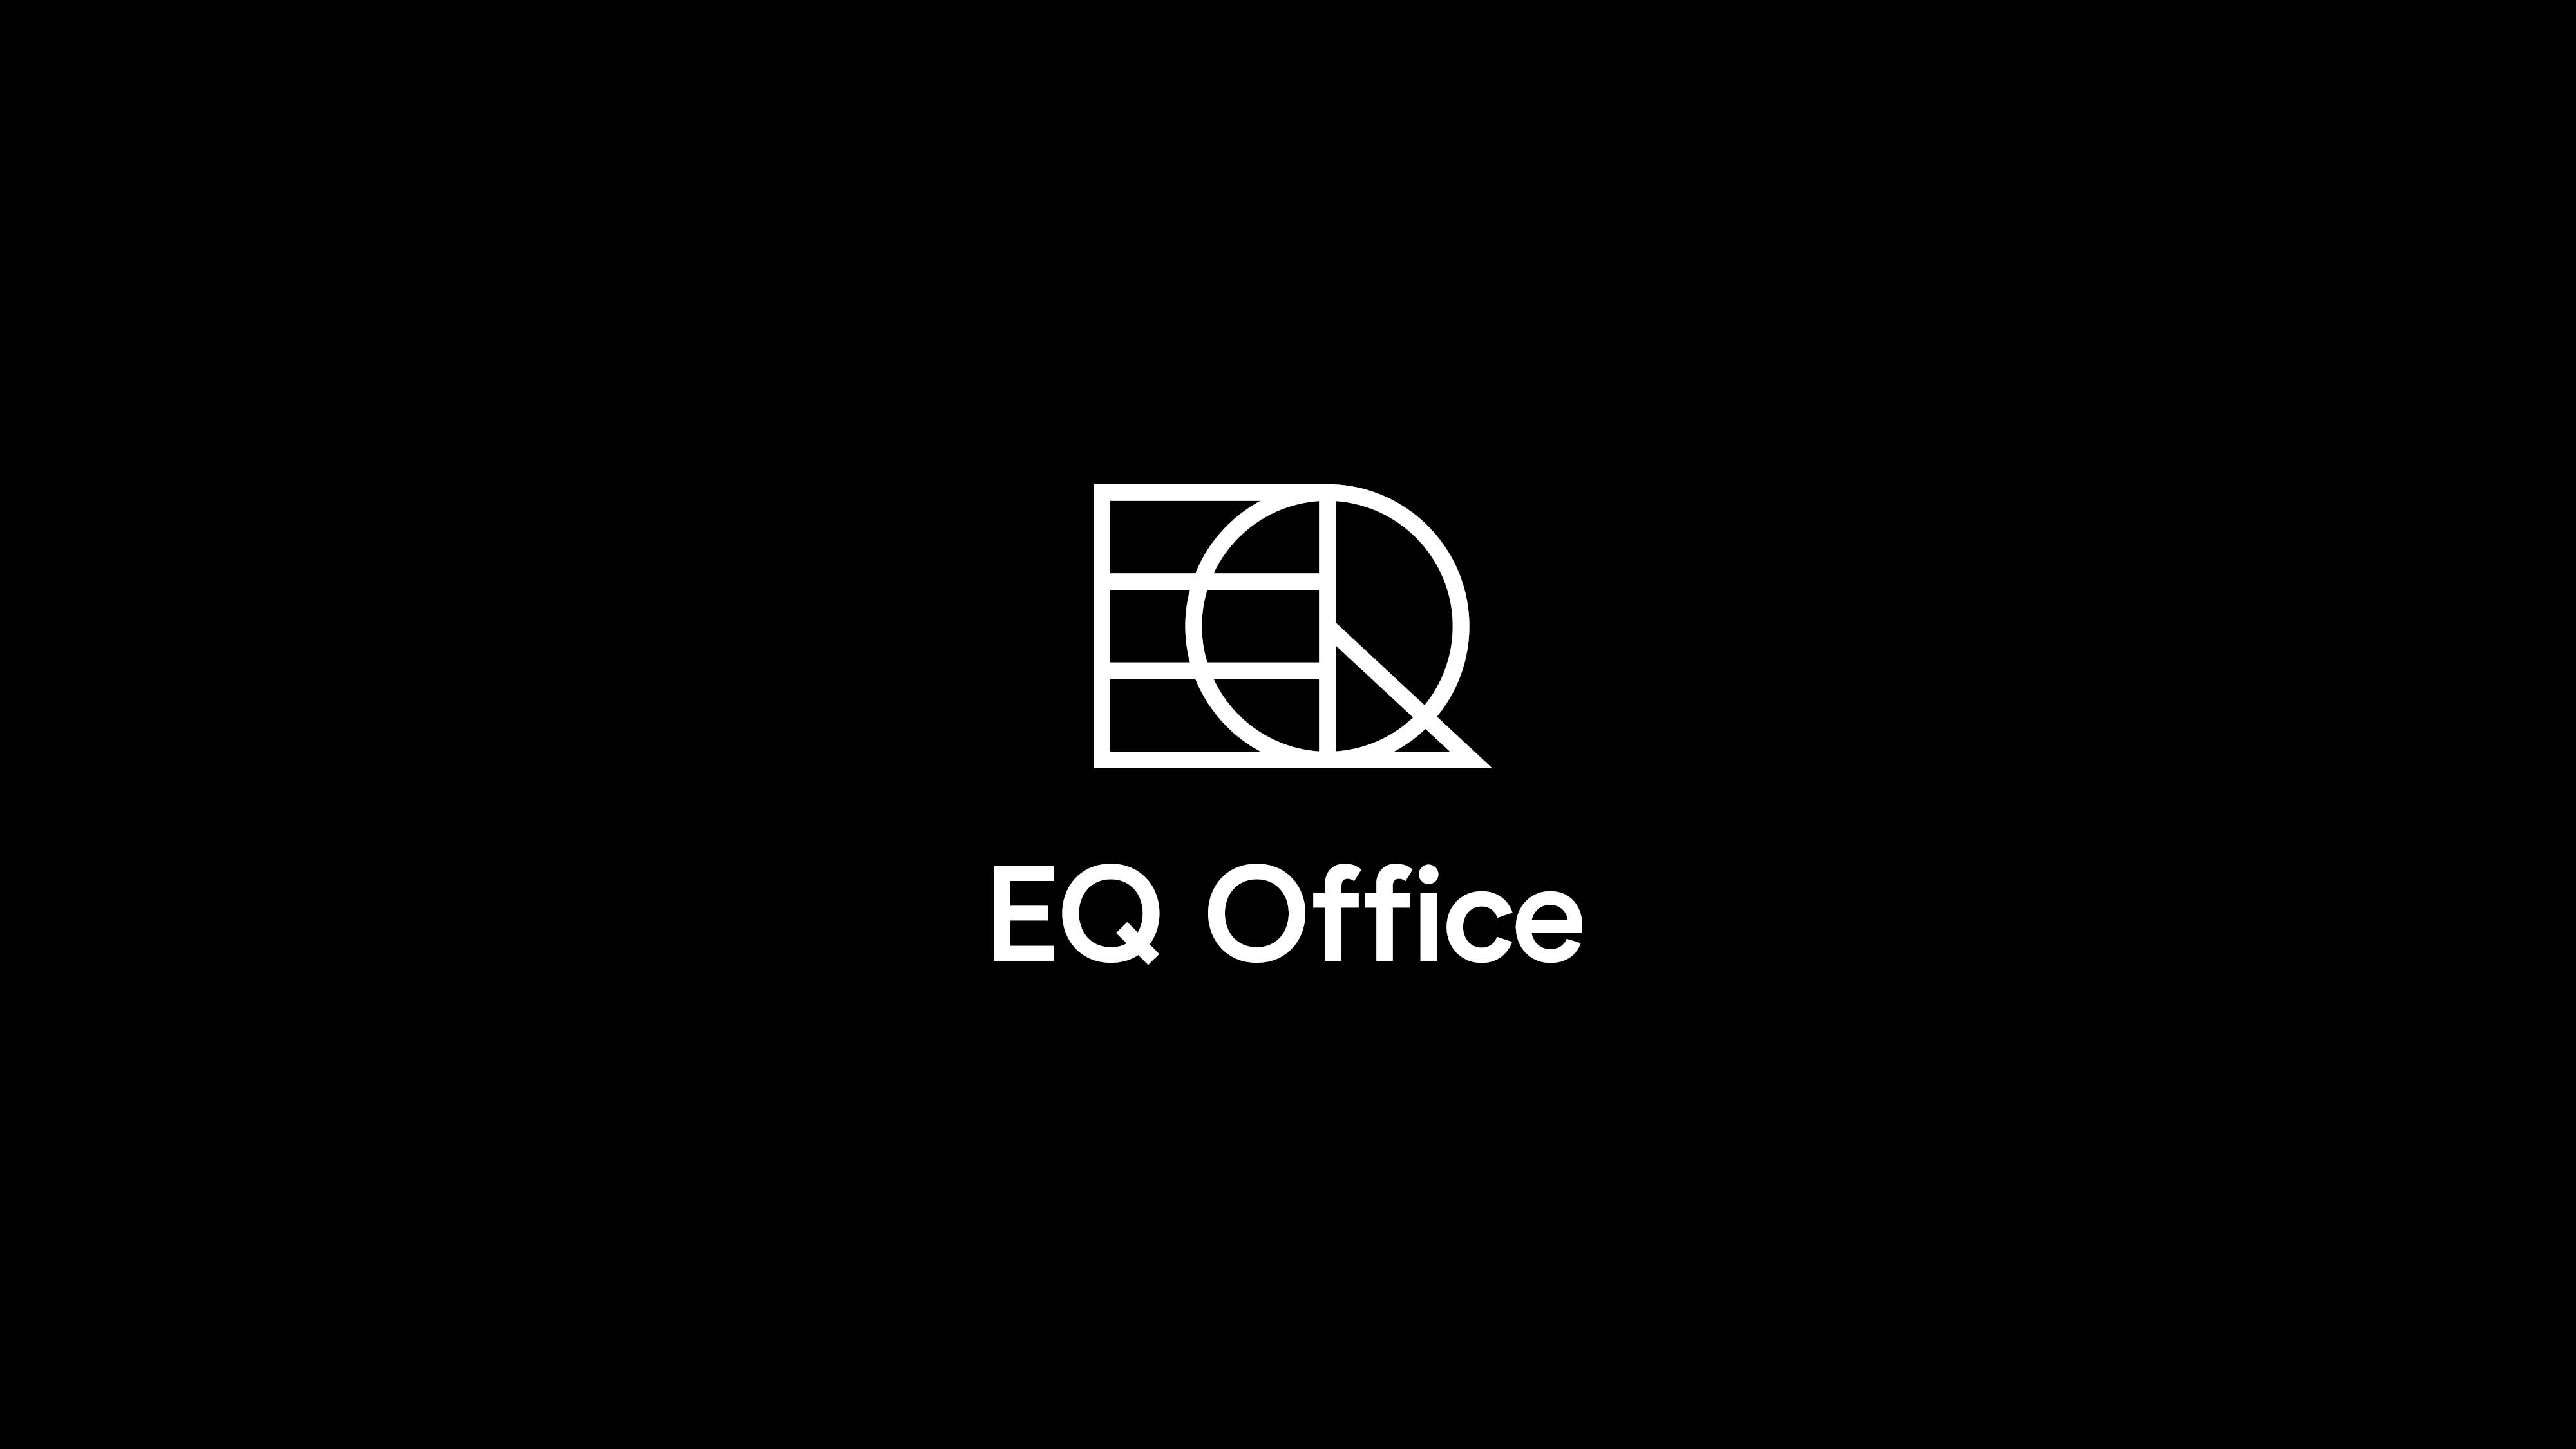 Equity Office embraces flexible workspace, adopts EQ Office name